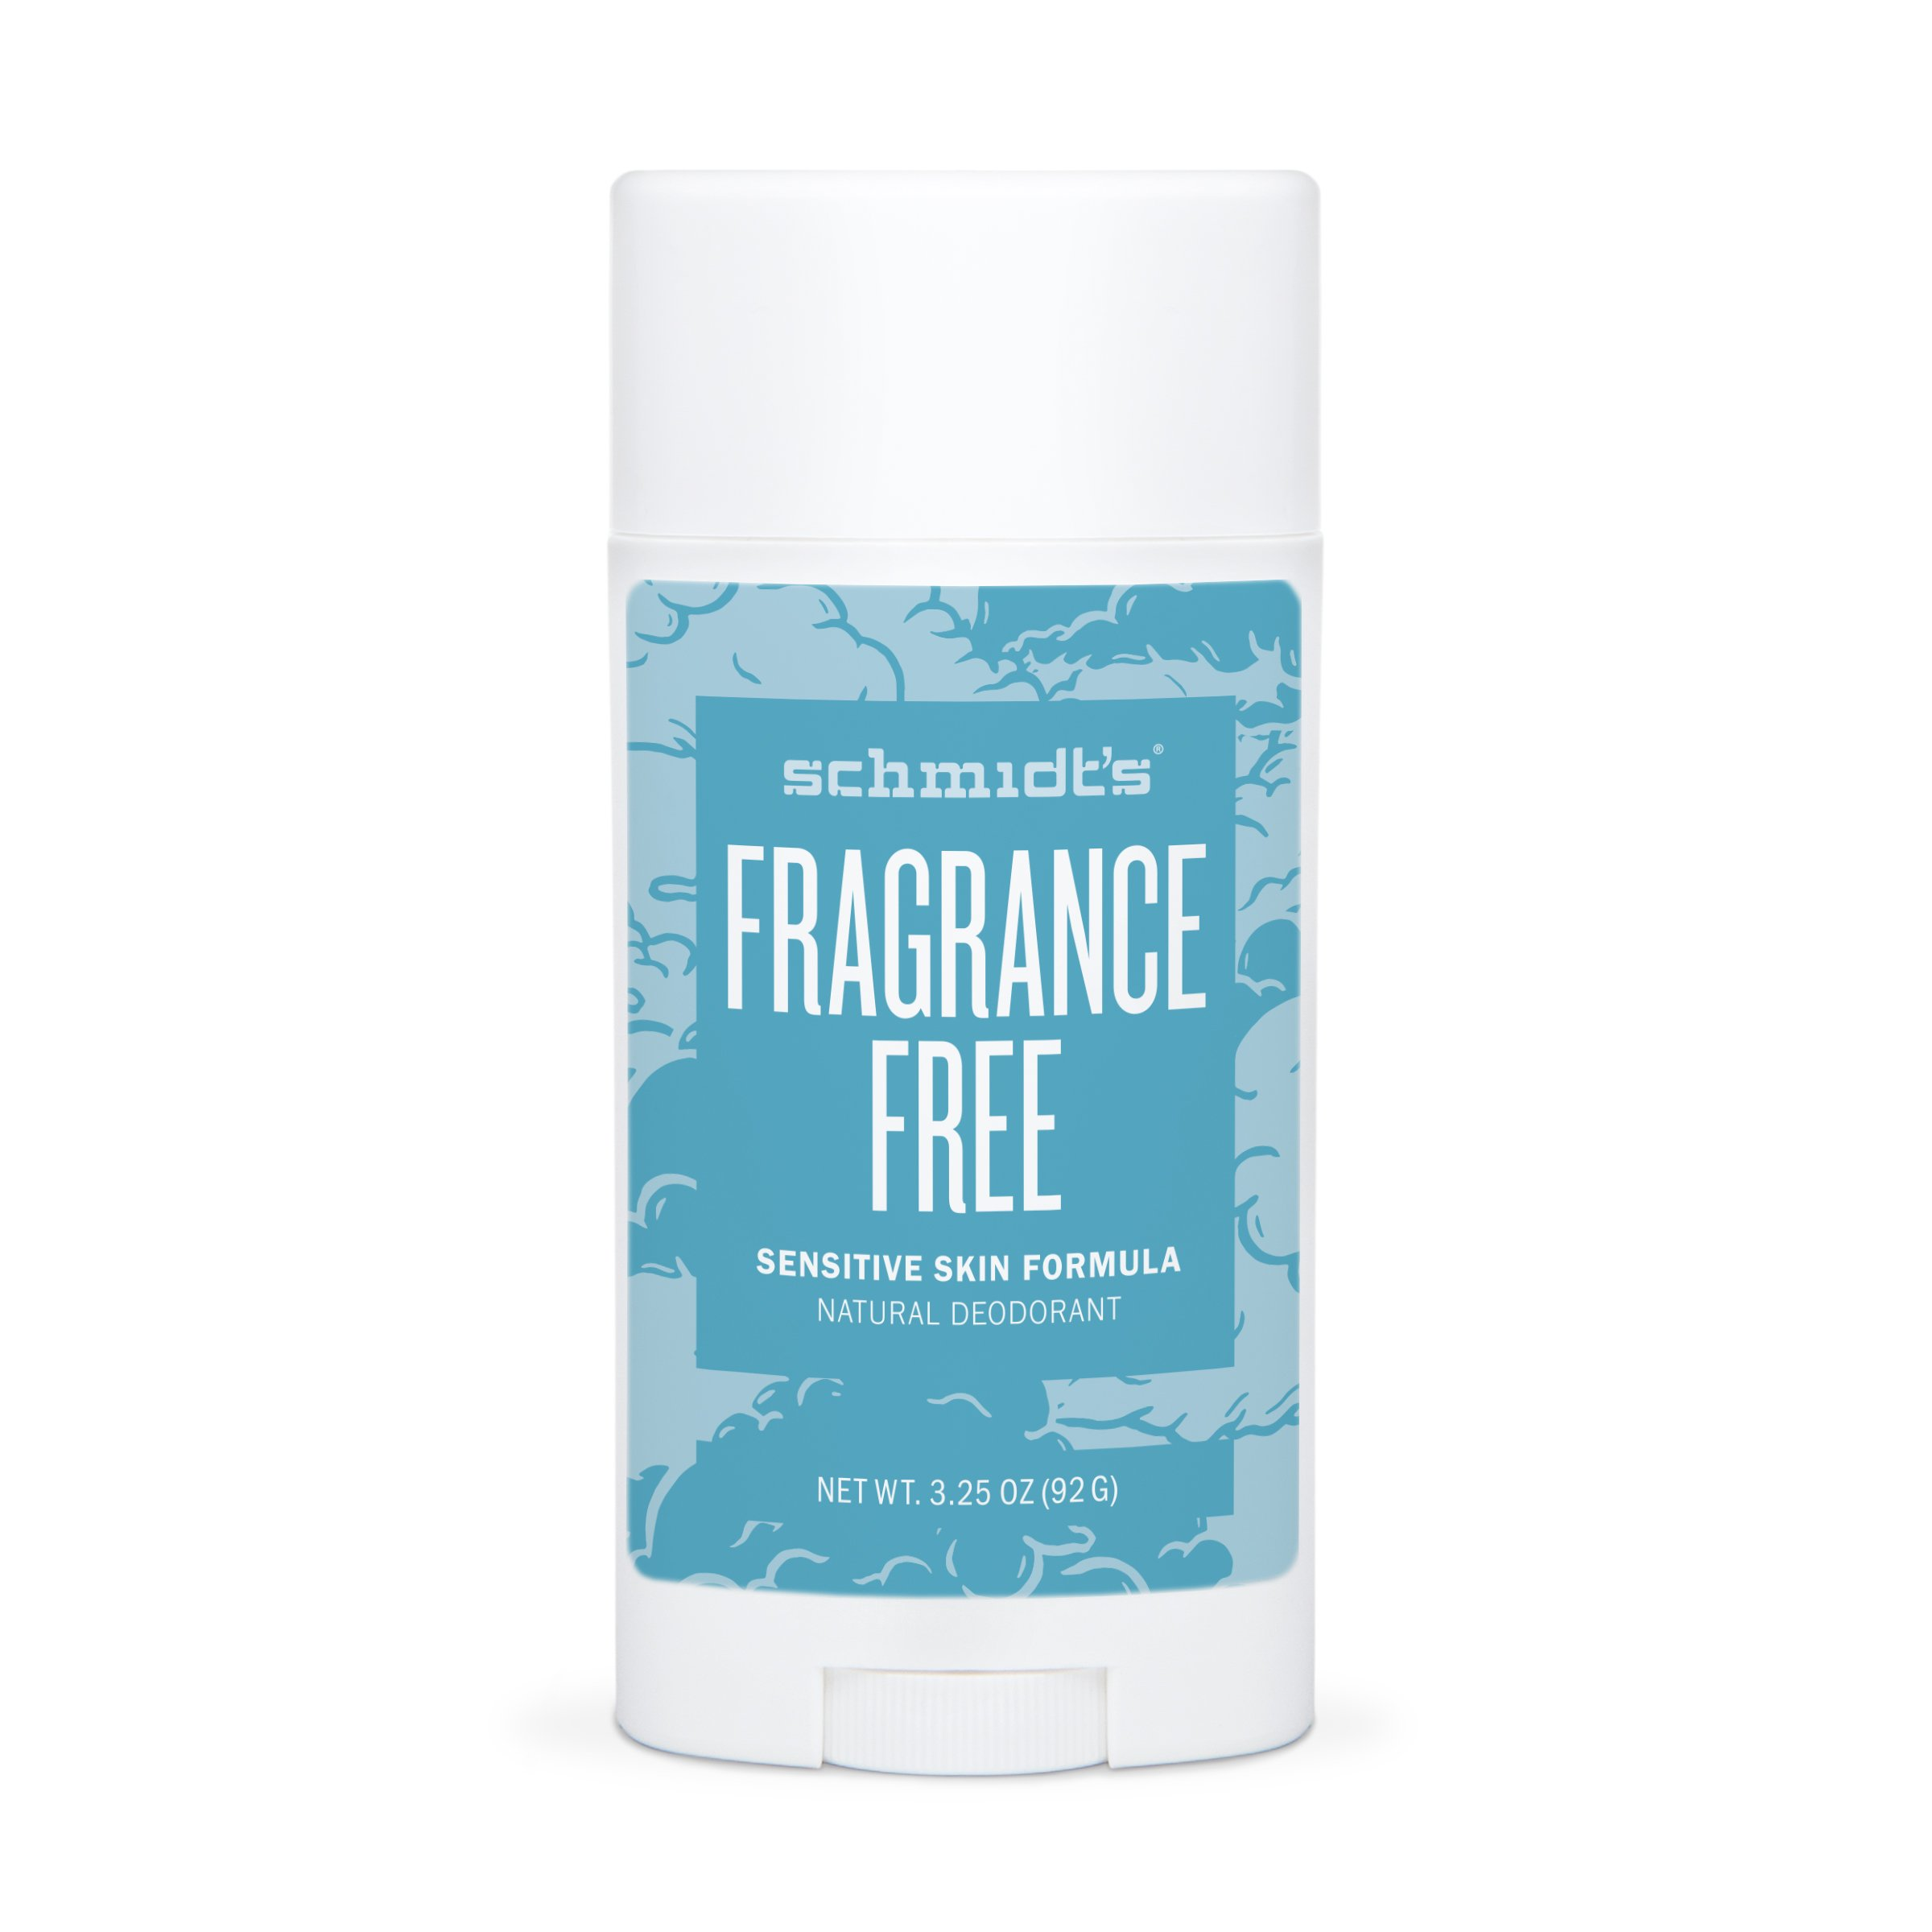 Schmidt's Natural Deodorant for Sensitive Skin - Fragrance-Free, 3.25 ounces. Stick for Women and Men